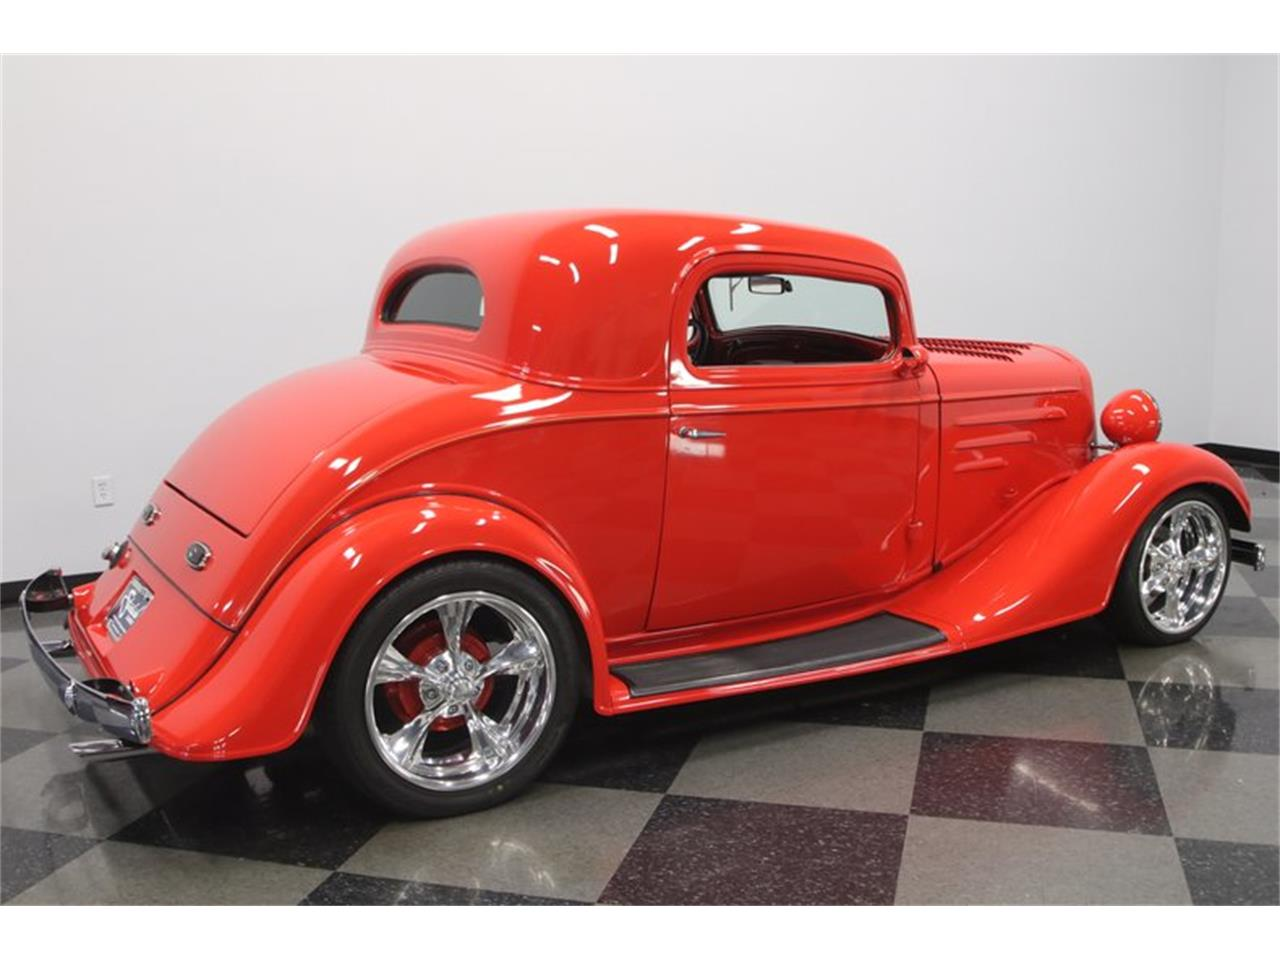 1934 Chevrolet 3-Window Coupe for sale in Lutz, FL – photo 14